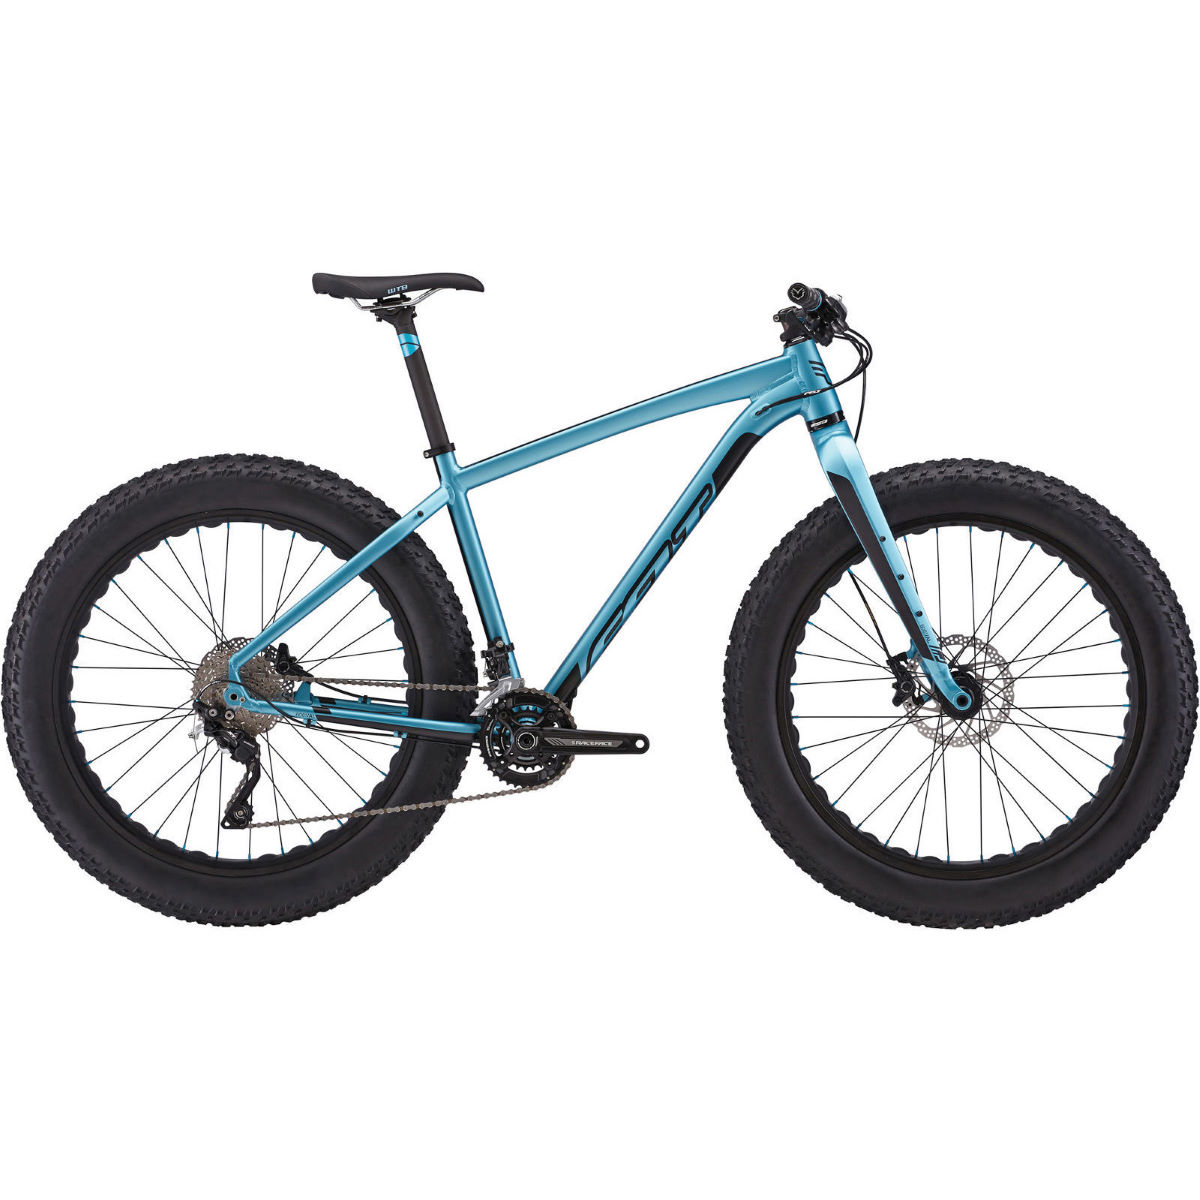 VTT Fat Bike Felt DD 30 (2016) - S Satin Steel Blue VTT semi-rigides